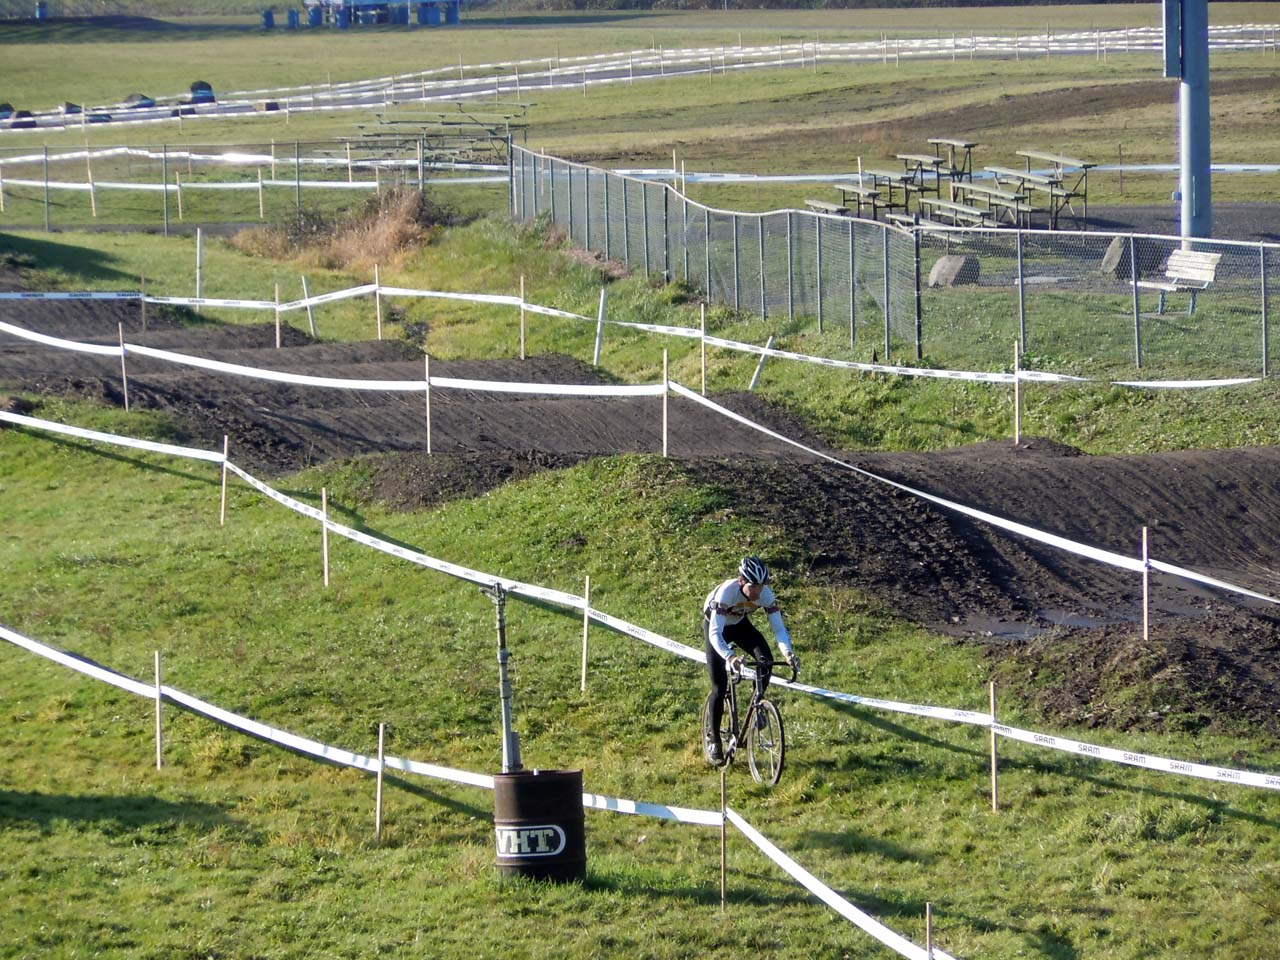 There's less of the motocross section, but more thick grass ©Josh Liberles